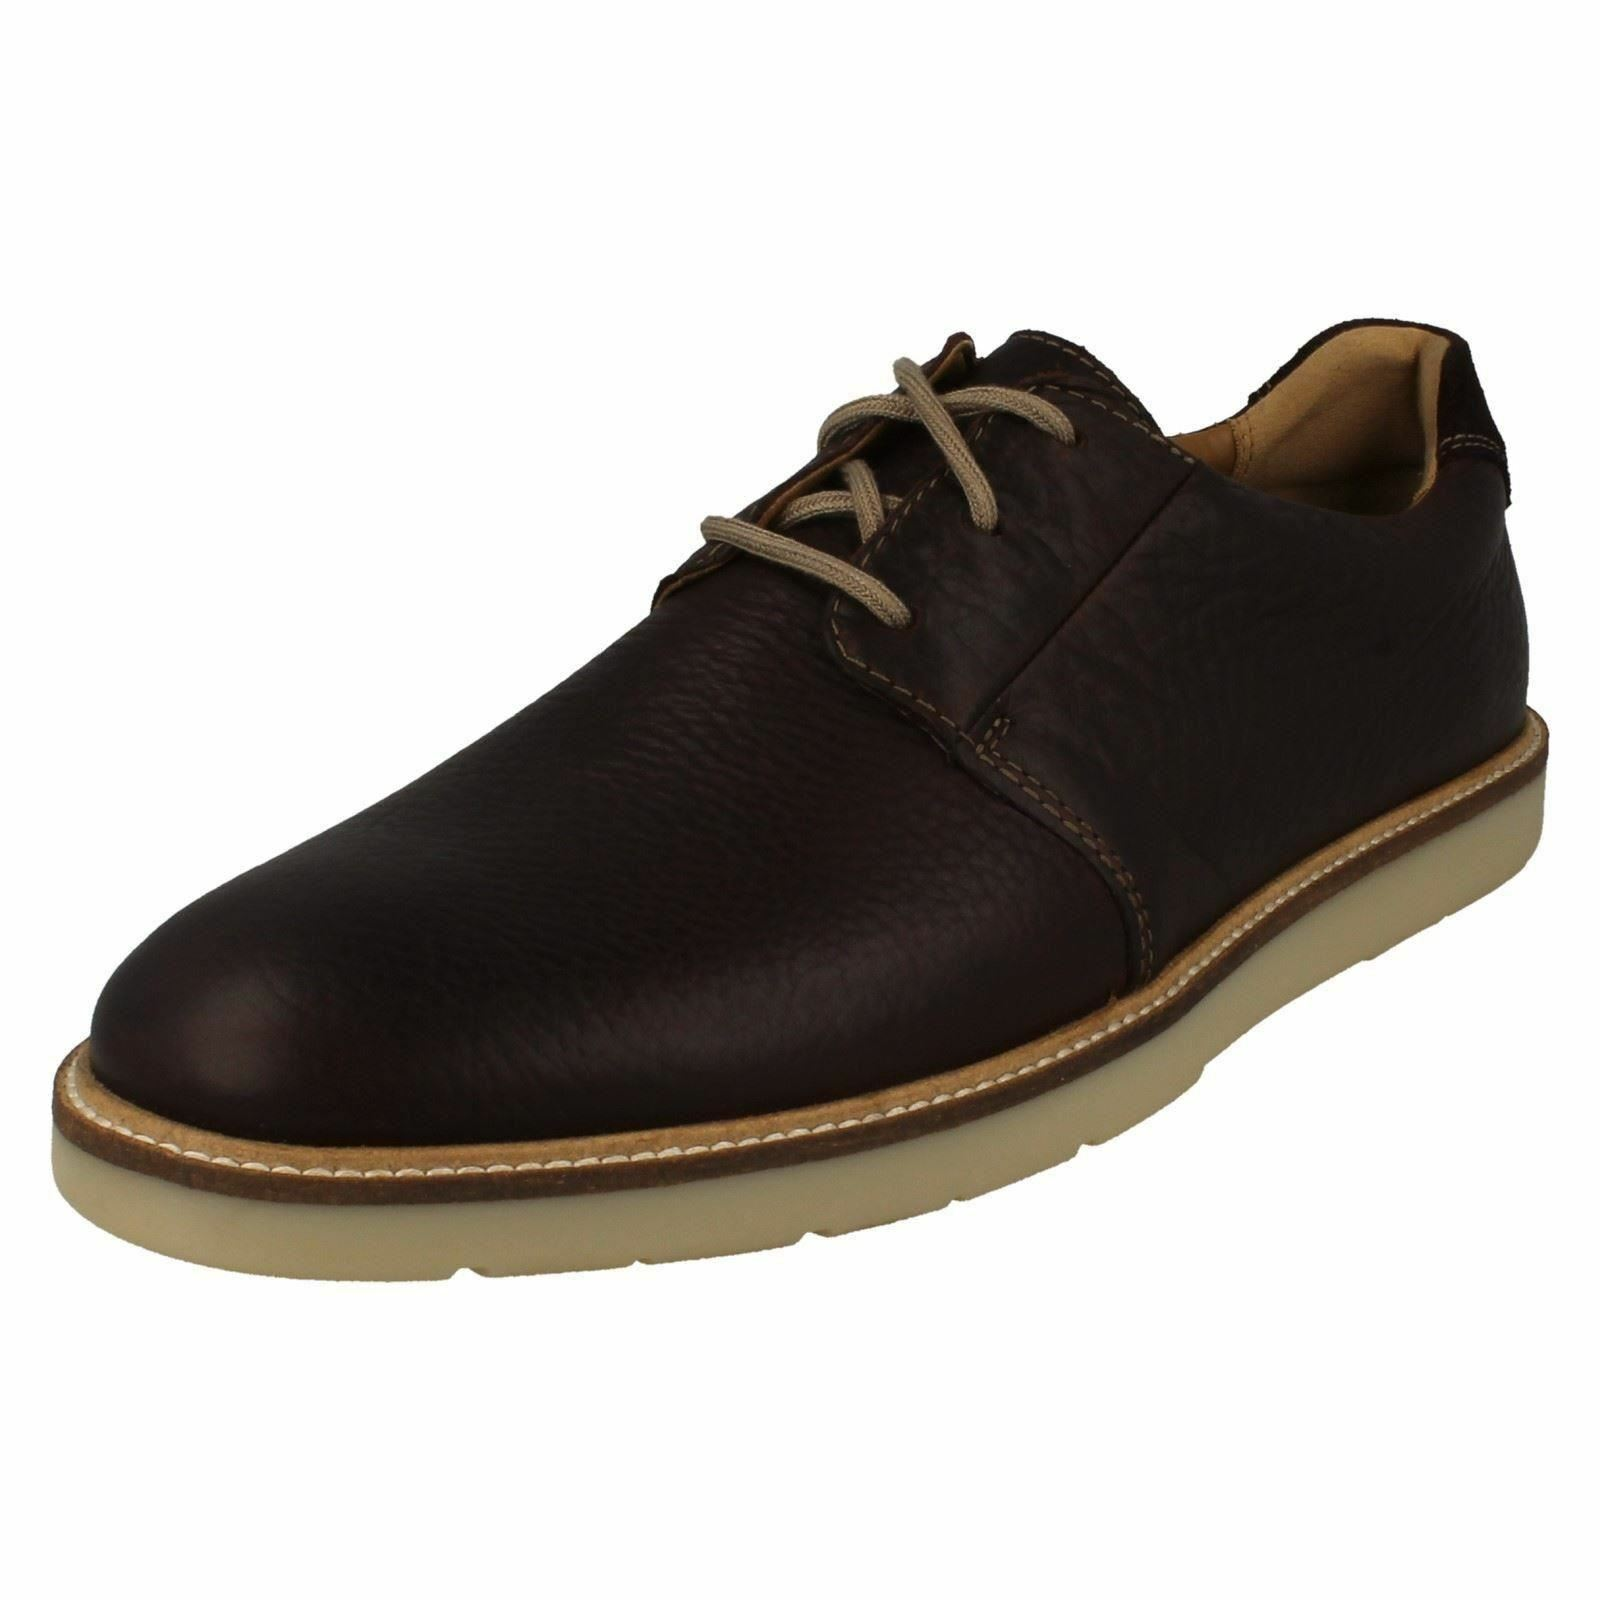 Mens Clarks Grandin Plain Dark Brown Leather Casual Lace Up shoes - G Fitting